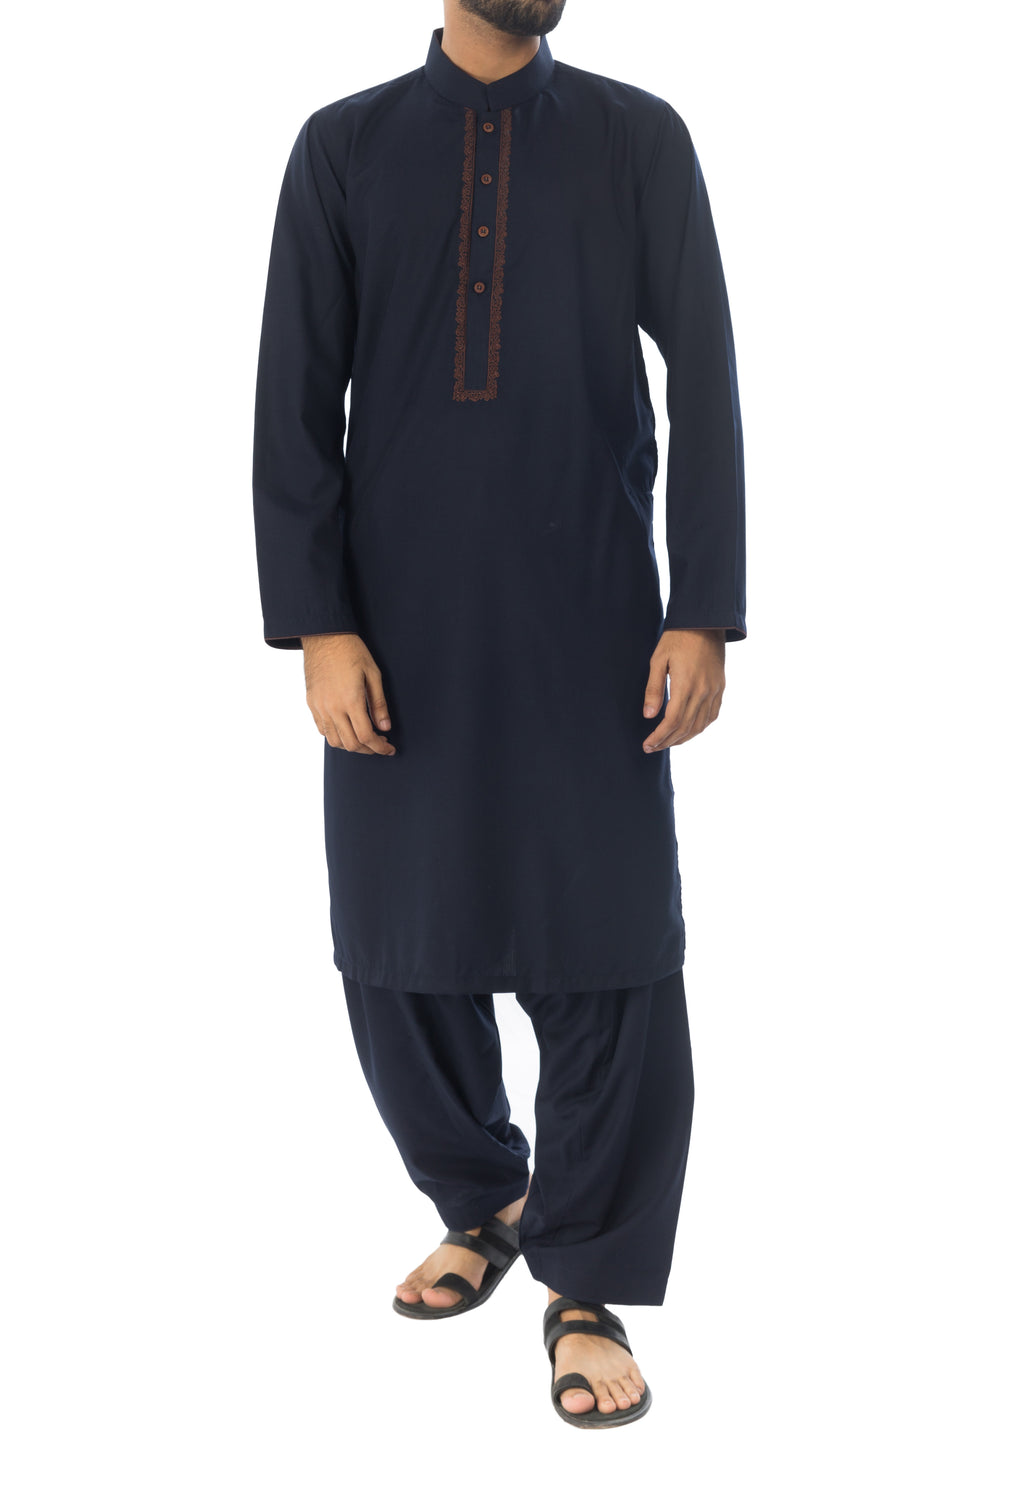 Image of   in Navy Blue SKU: RQ-17129-Medium-Navy Blue